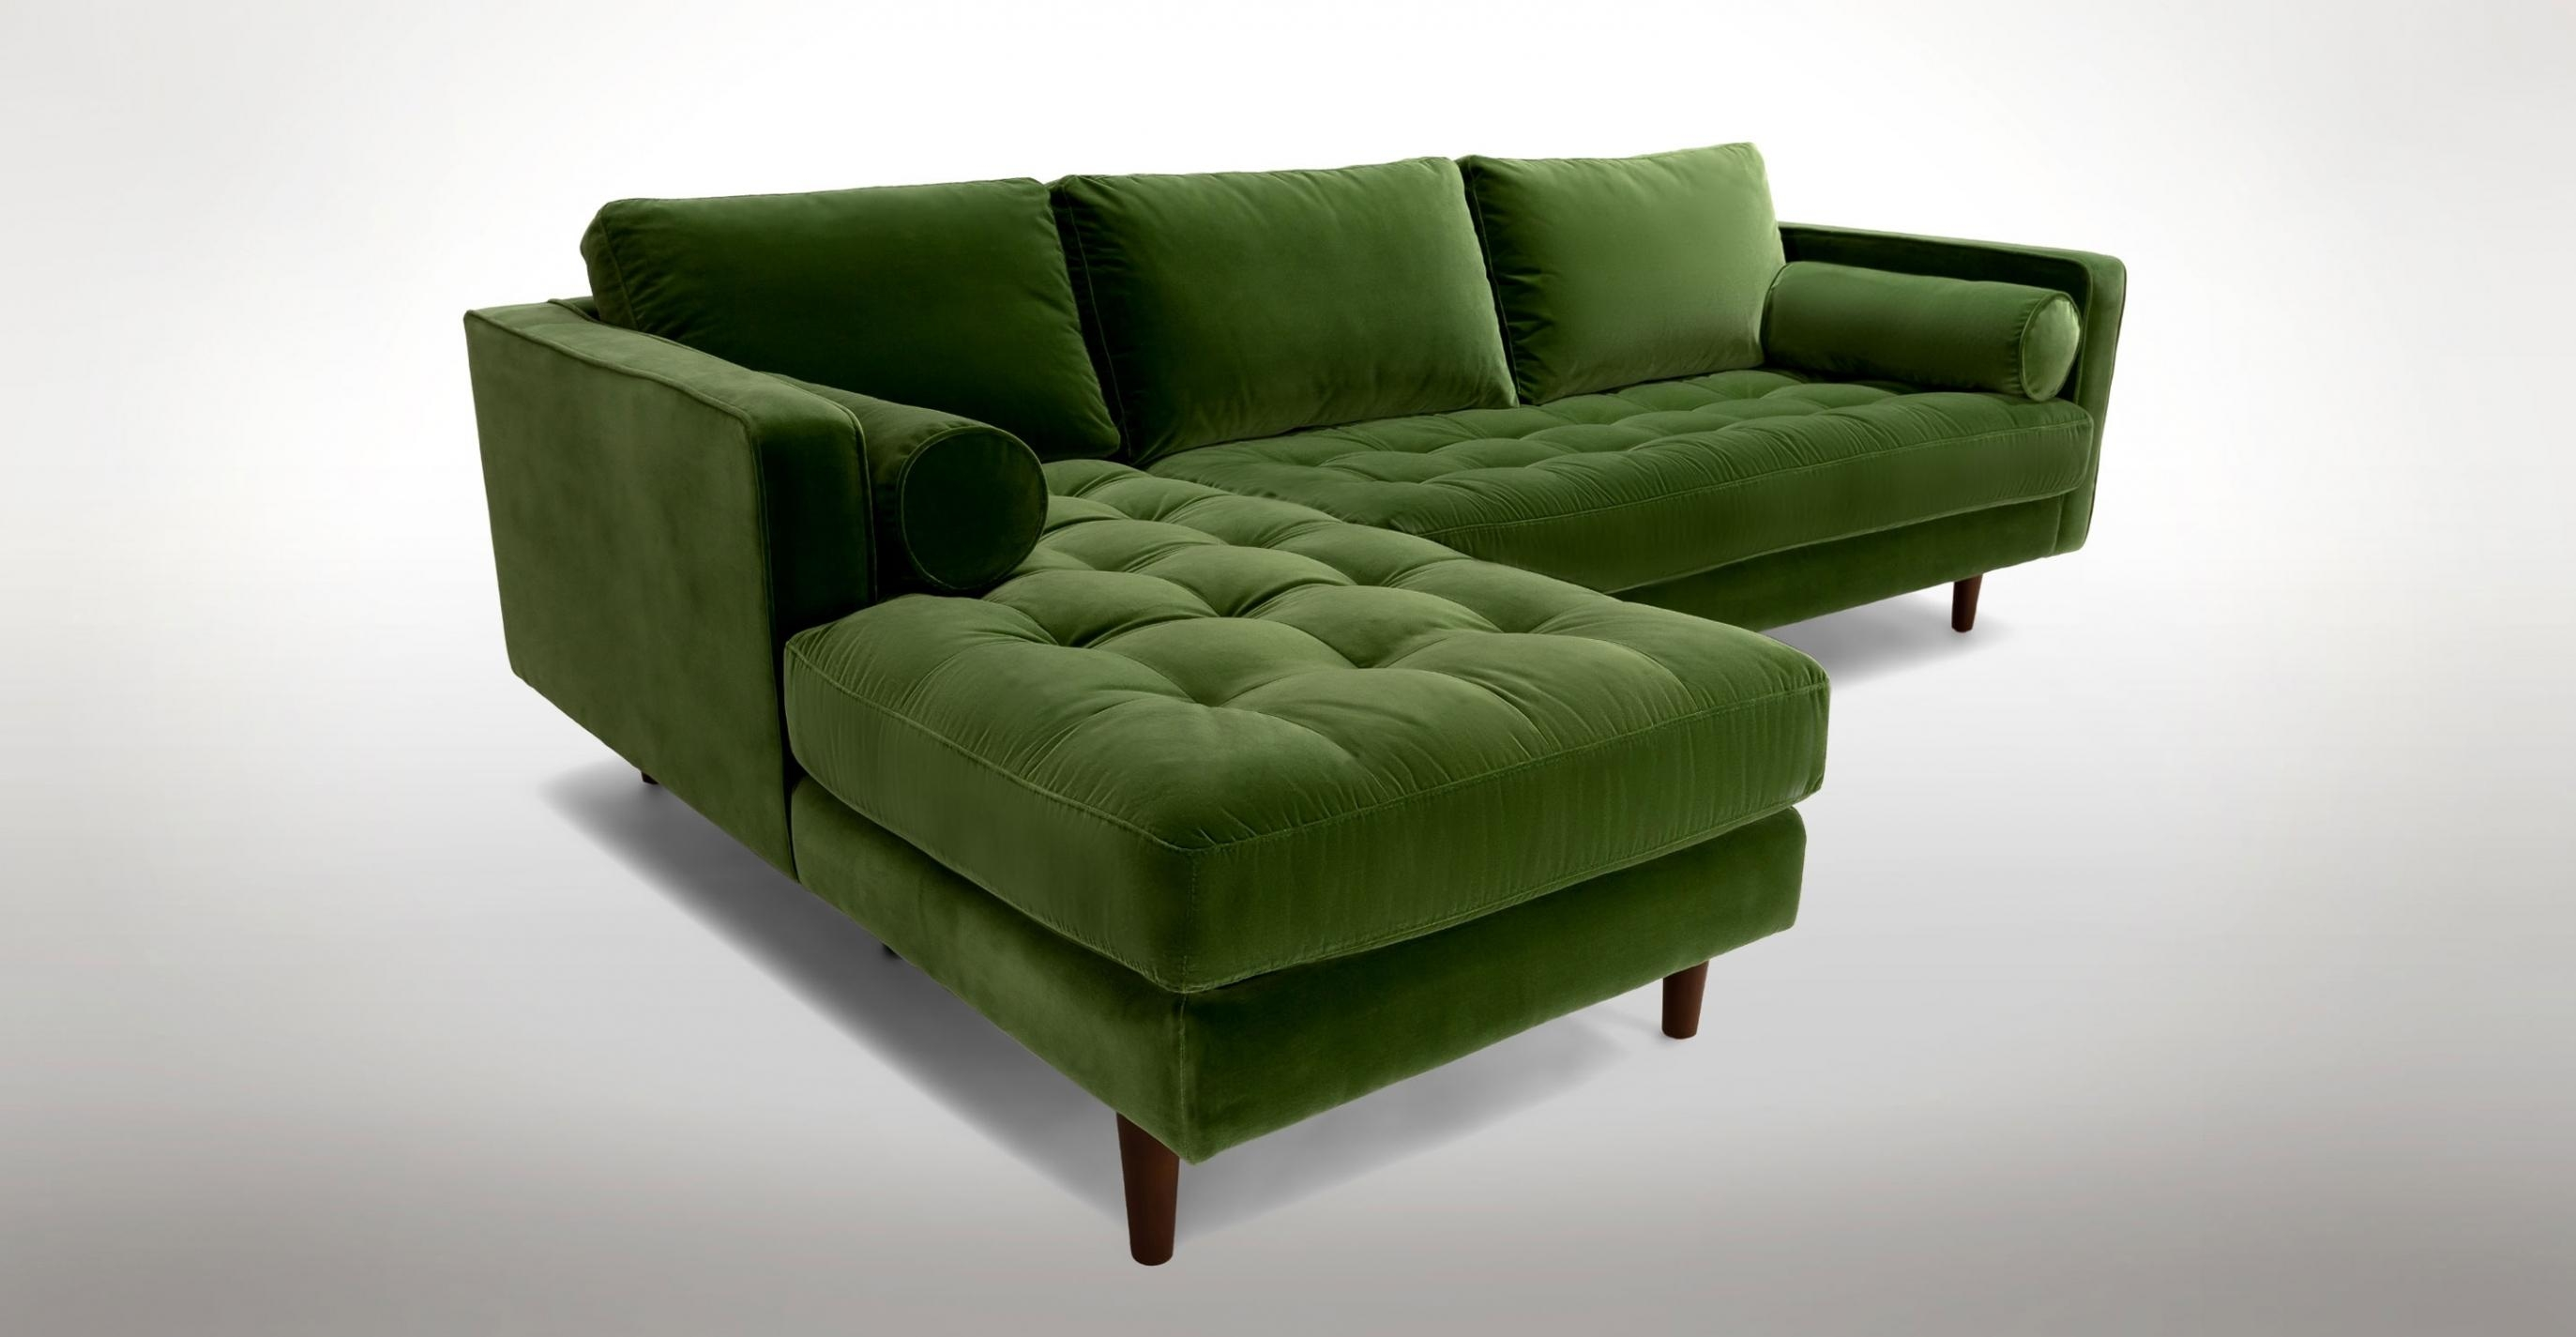 Likable Olive Green Fabric Sectional Sofa With Chaise And With Throughout Green Sectional Sofa With Chaise (Image 10 of 15)